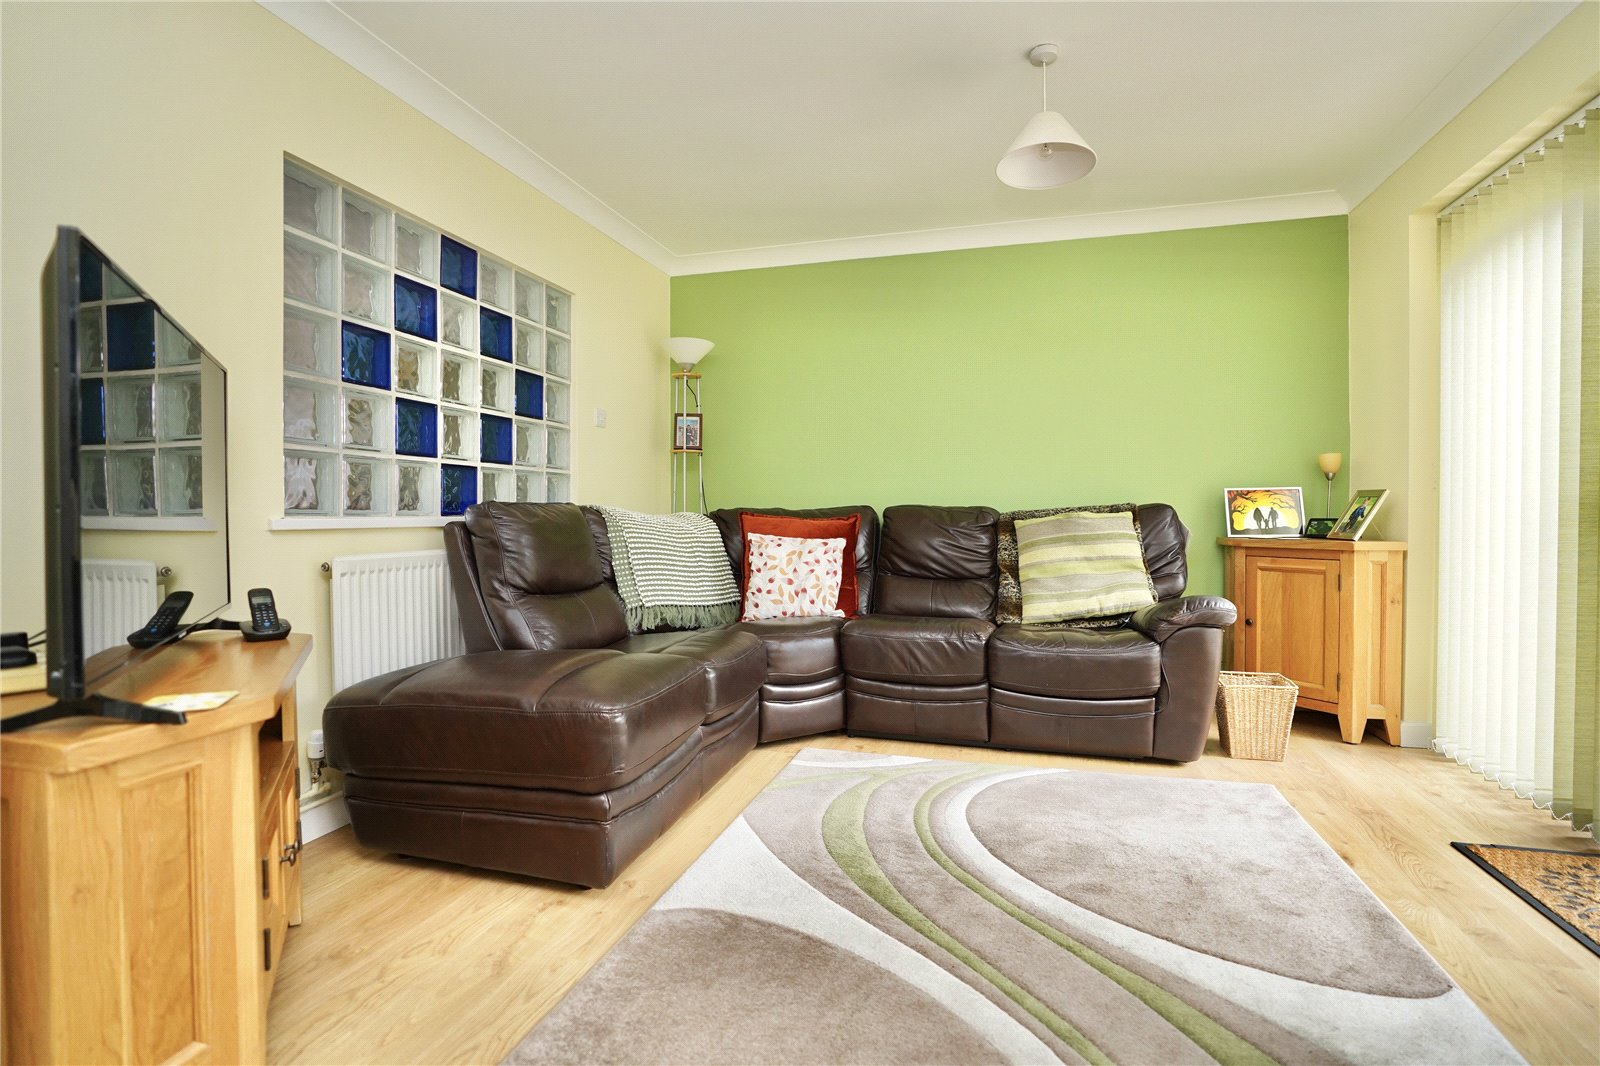 4 bed house for sale in Eaton Socon, PE19 8HU - Property Image 1